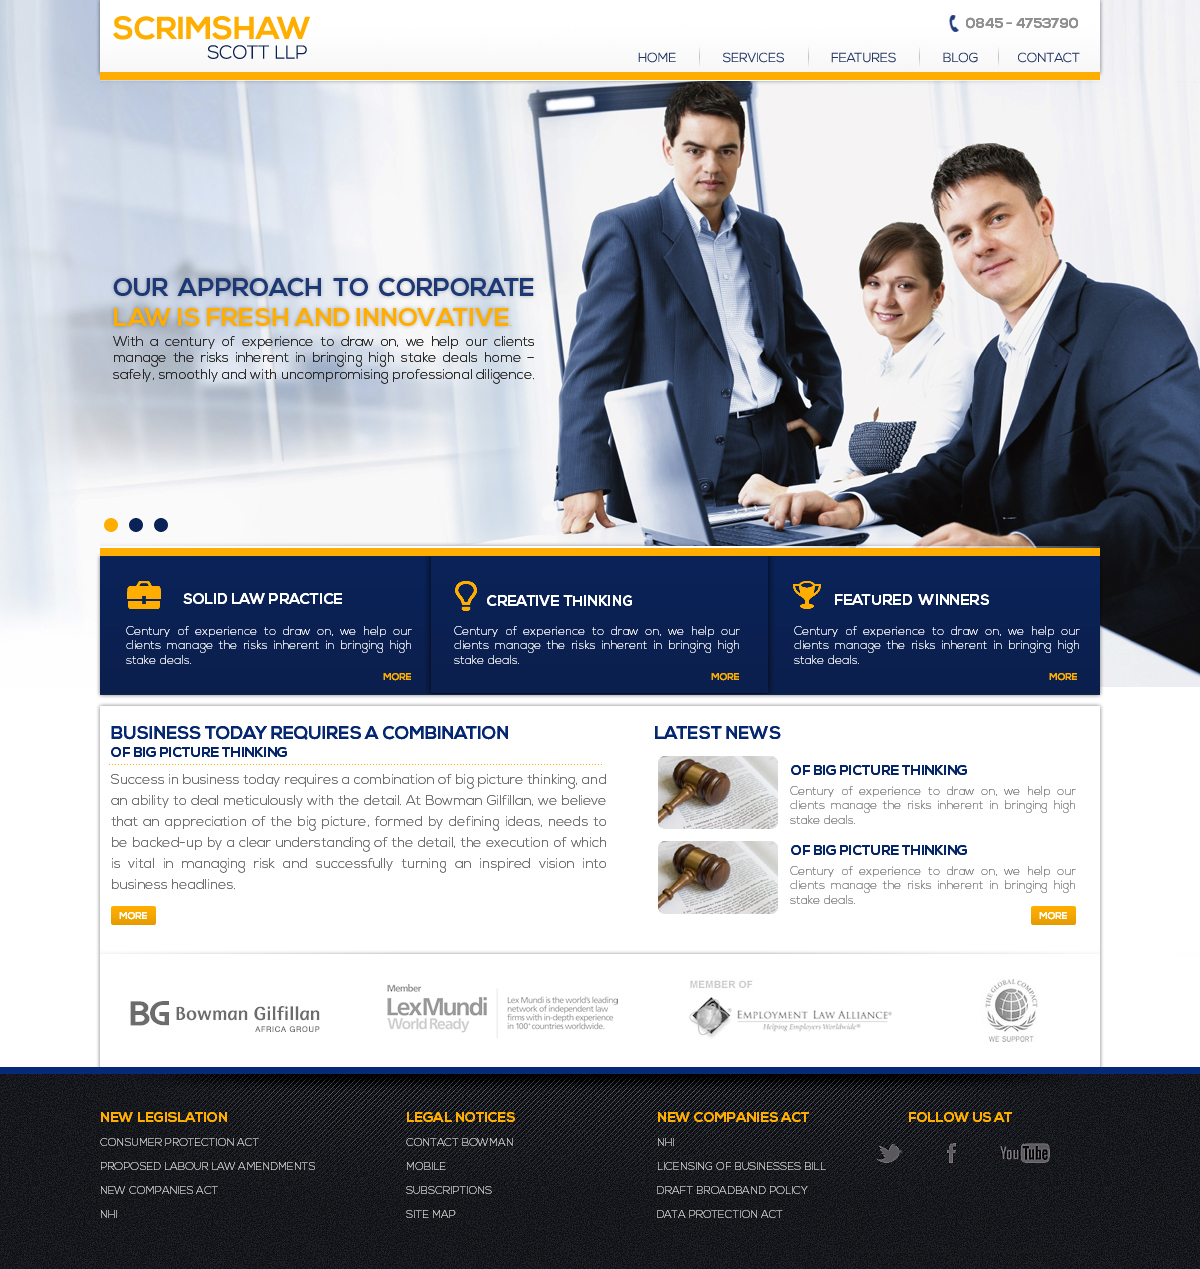 Web Page Design by webexprtz - Entry No. 2 in the Web Page Design Contest Captivating Web Page Design for Scrimshaw Scott LLP.